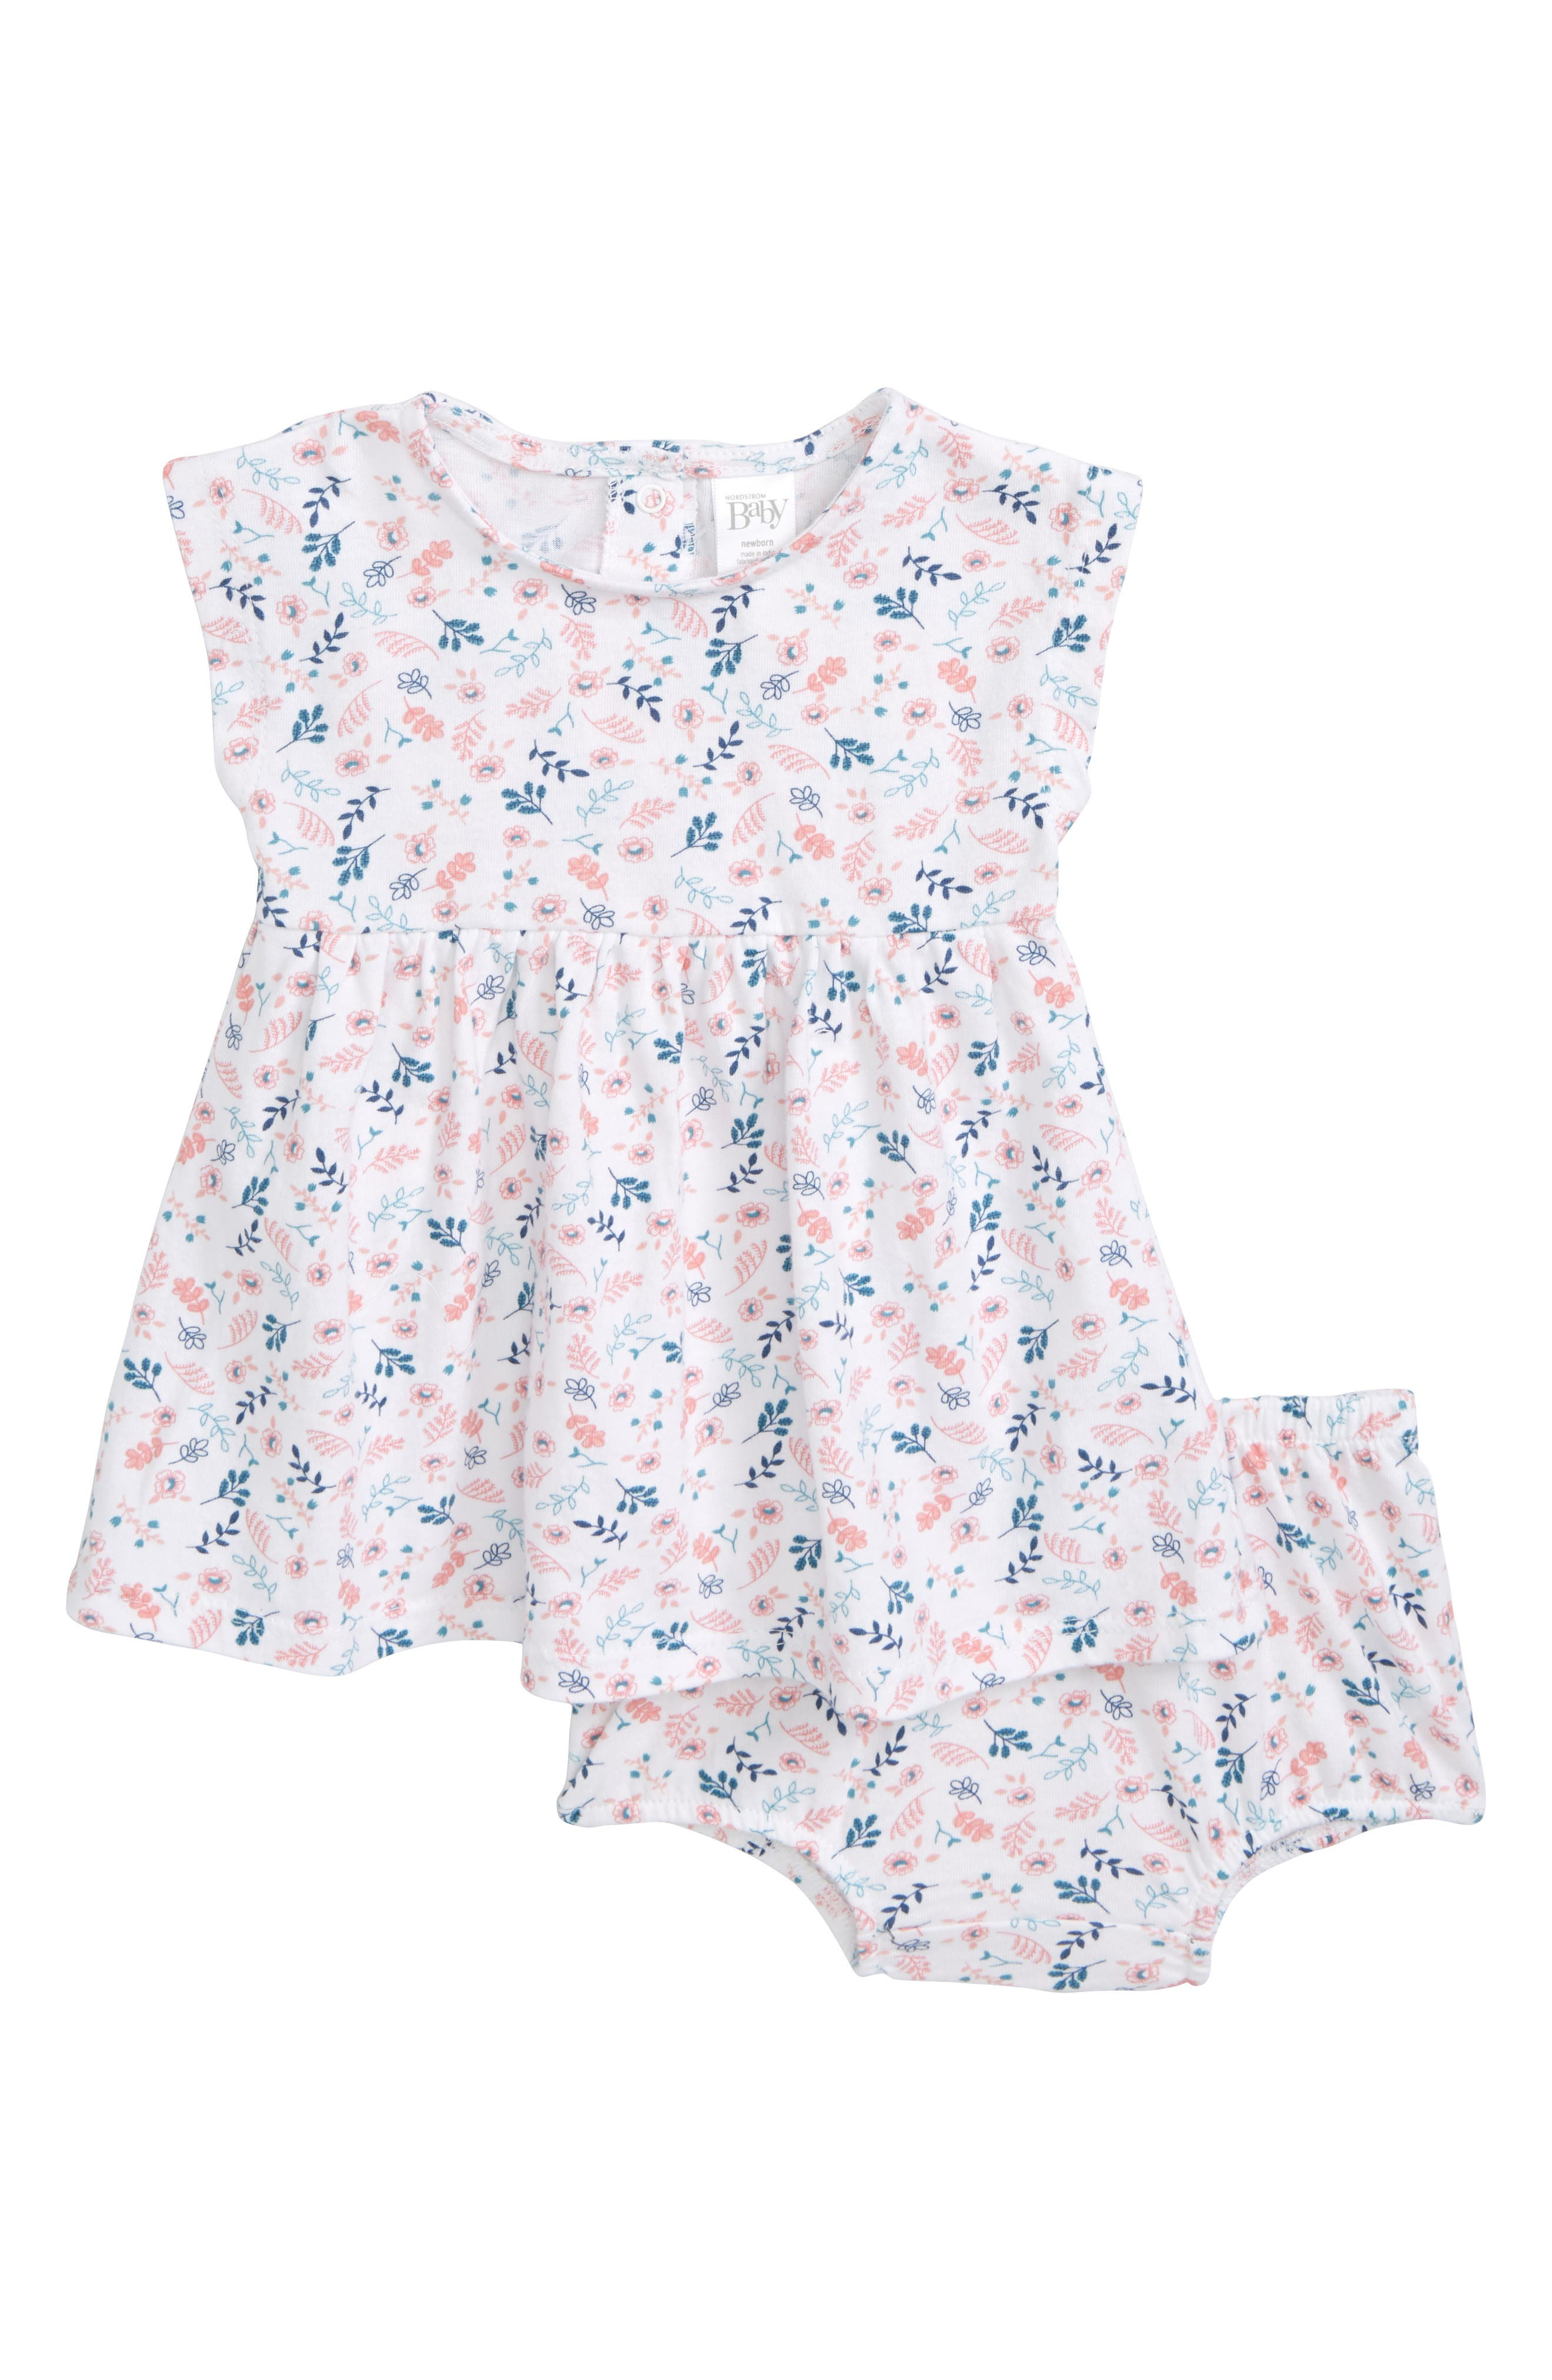 Nordstrom Baby Print Knit Dress (Baby Girls)